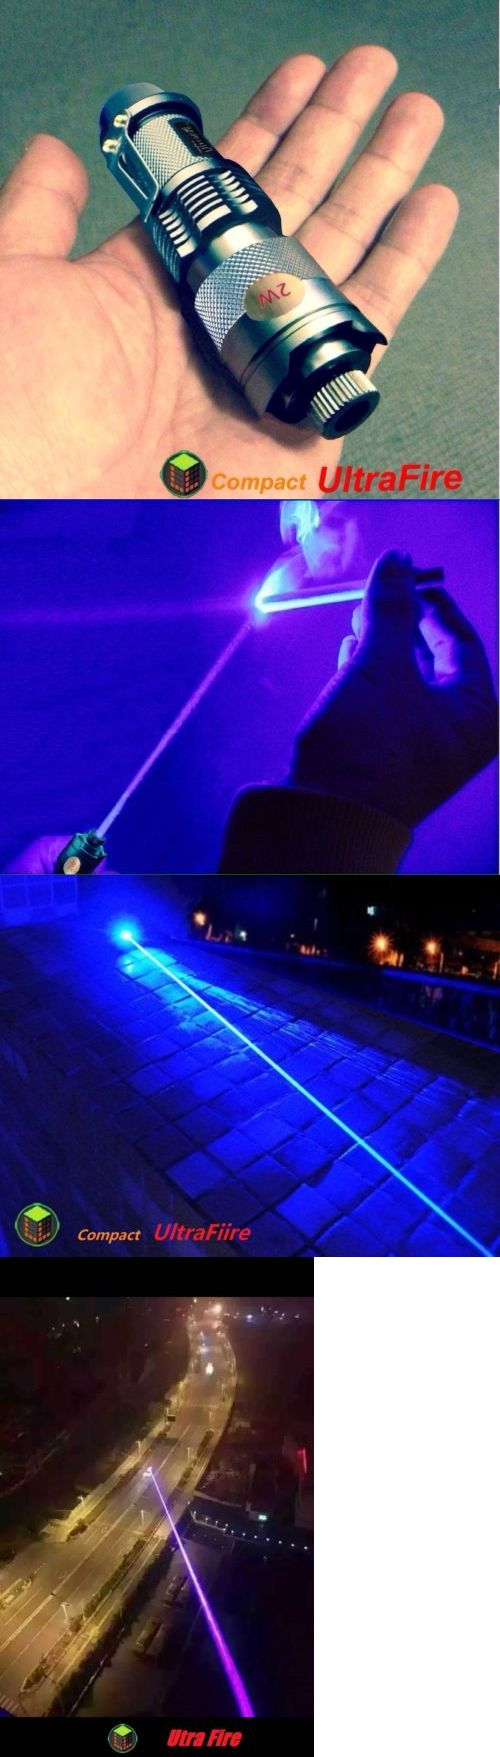 Laser Pointers: Military High Power 2W 450Nm Blue Purple Laser Pointer Pen Cigars Lighter Usa -> BUY IT NOW ONLY: $230 on eBay!